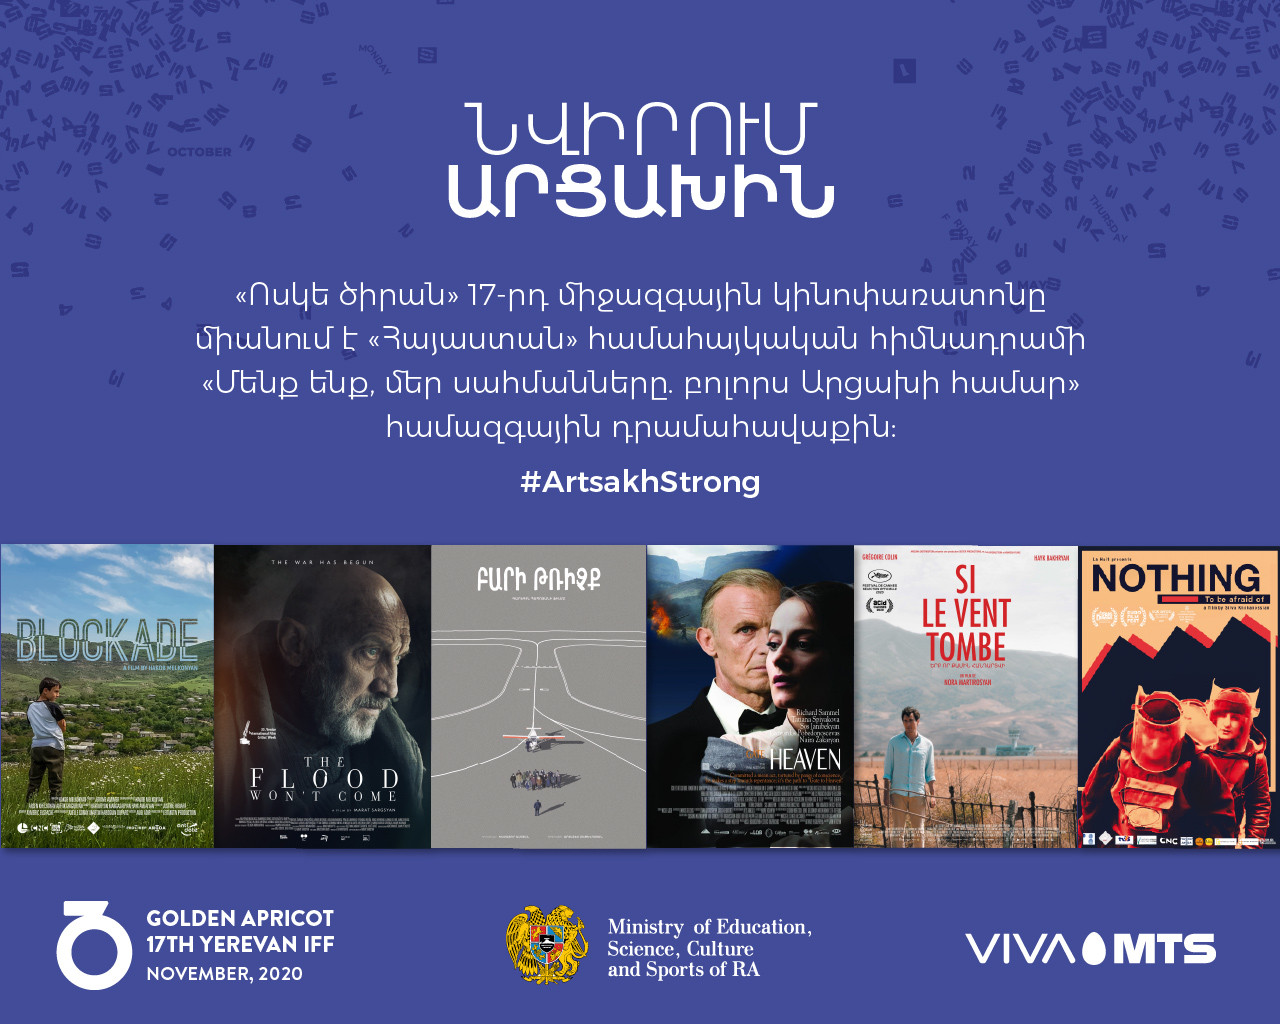 Golden Apricot to join pan-Armenian fundraiser with